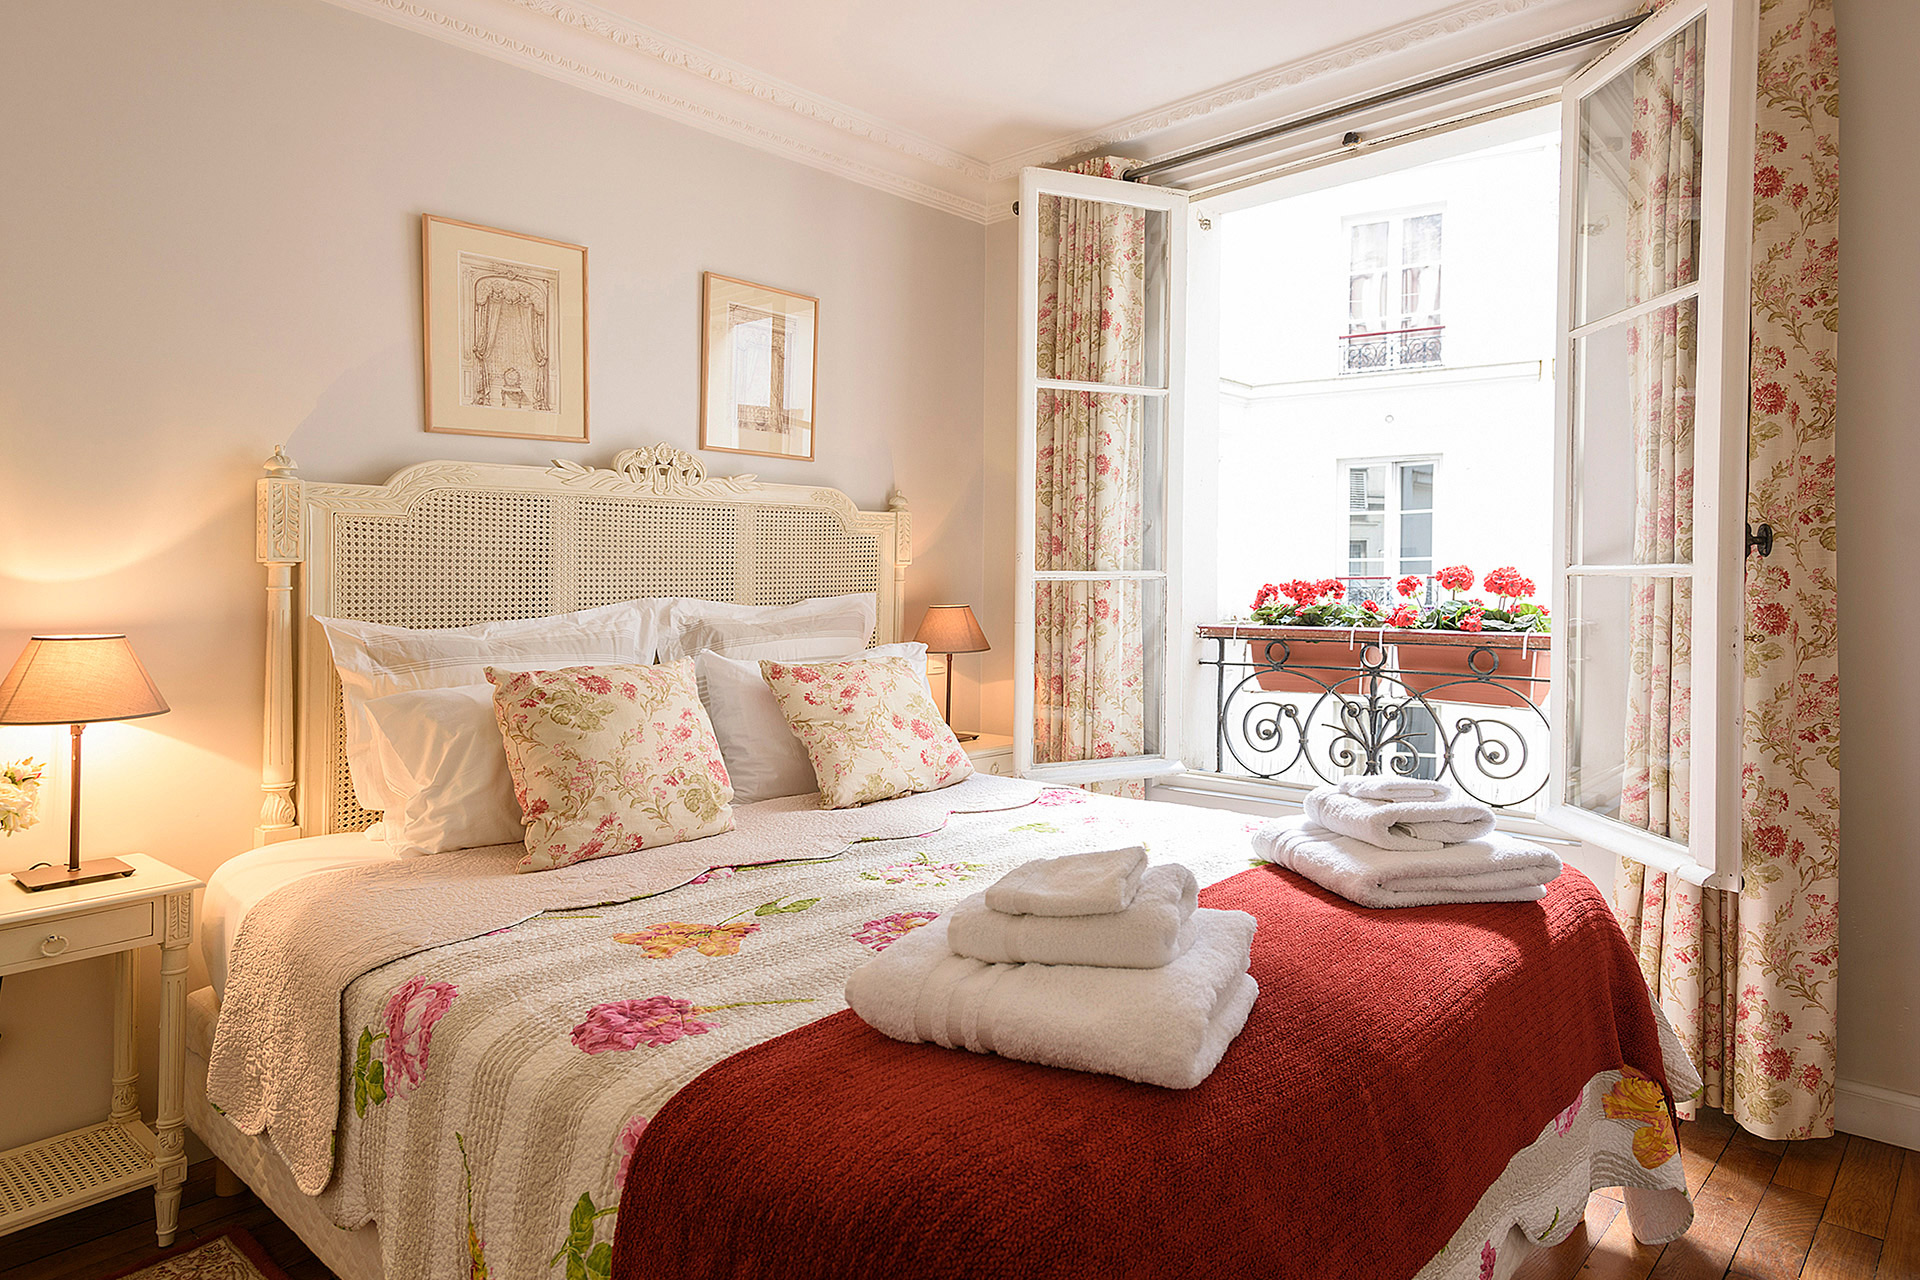 Provencal style bedroom with comfortable extra wide queen bed in the Clairette vacation rental offered by Paris Perfect